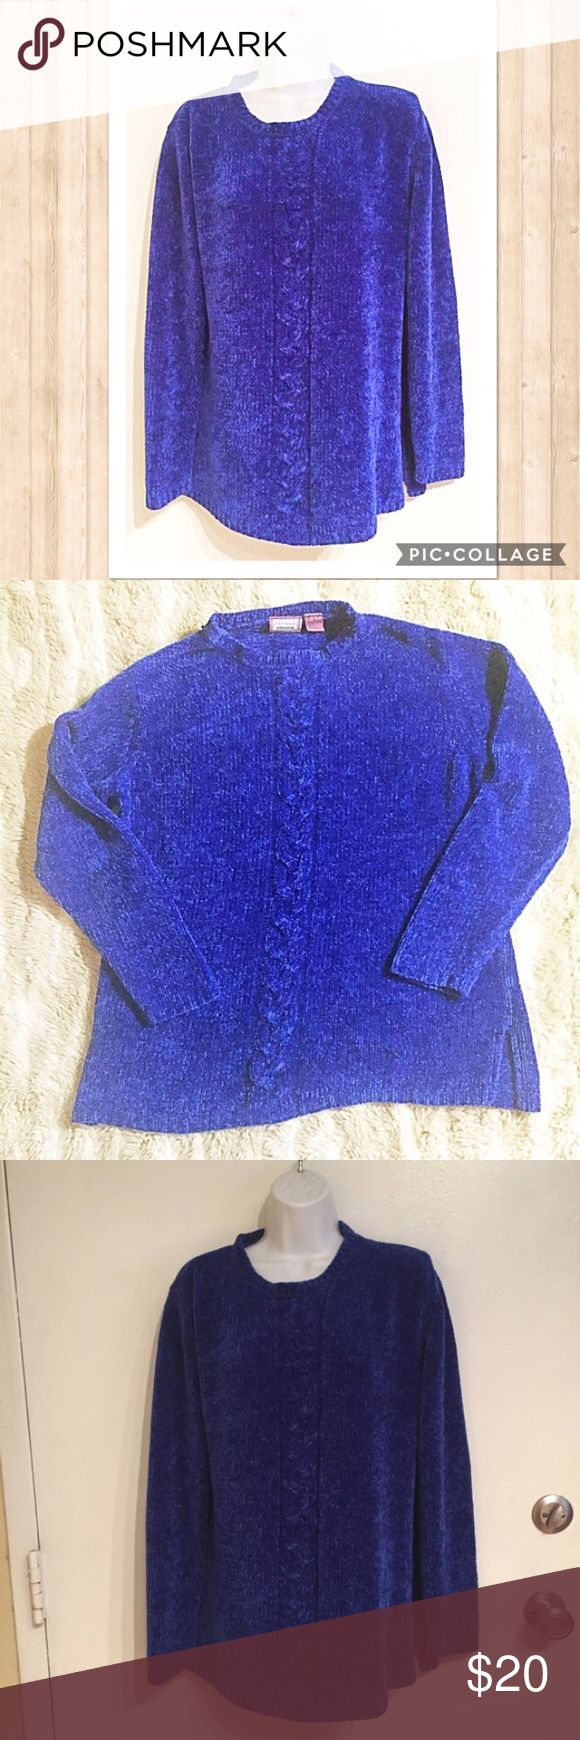 ☘️5for$25🍀 Royal Blue Blush Oversized Sweater Soft and plushy royal blue sweater. Size medium. #soft #plush #blue #royalblue #medium #oversized #sweater #punkydoodle  No modeling Smoke free home  I do discount bundles Premier Sweaters